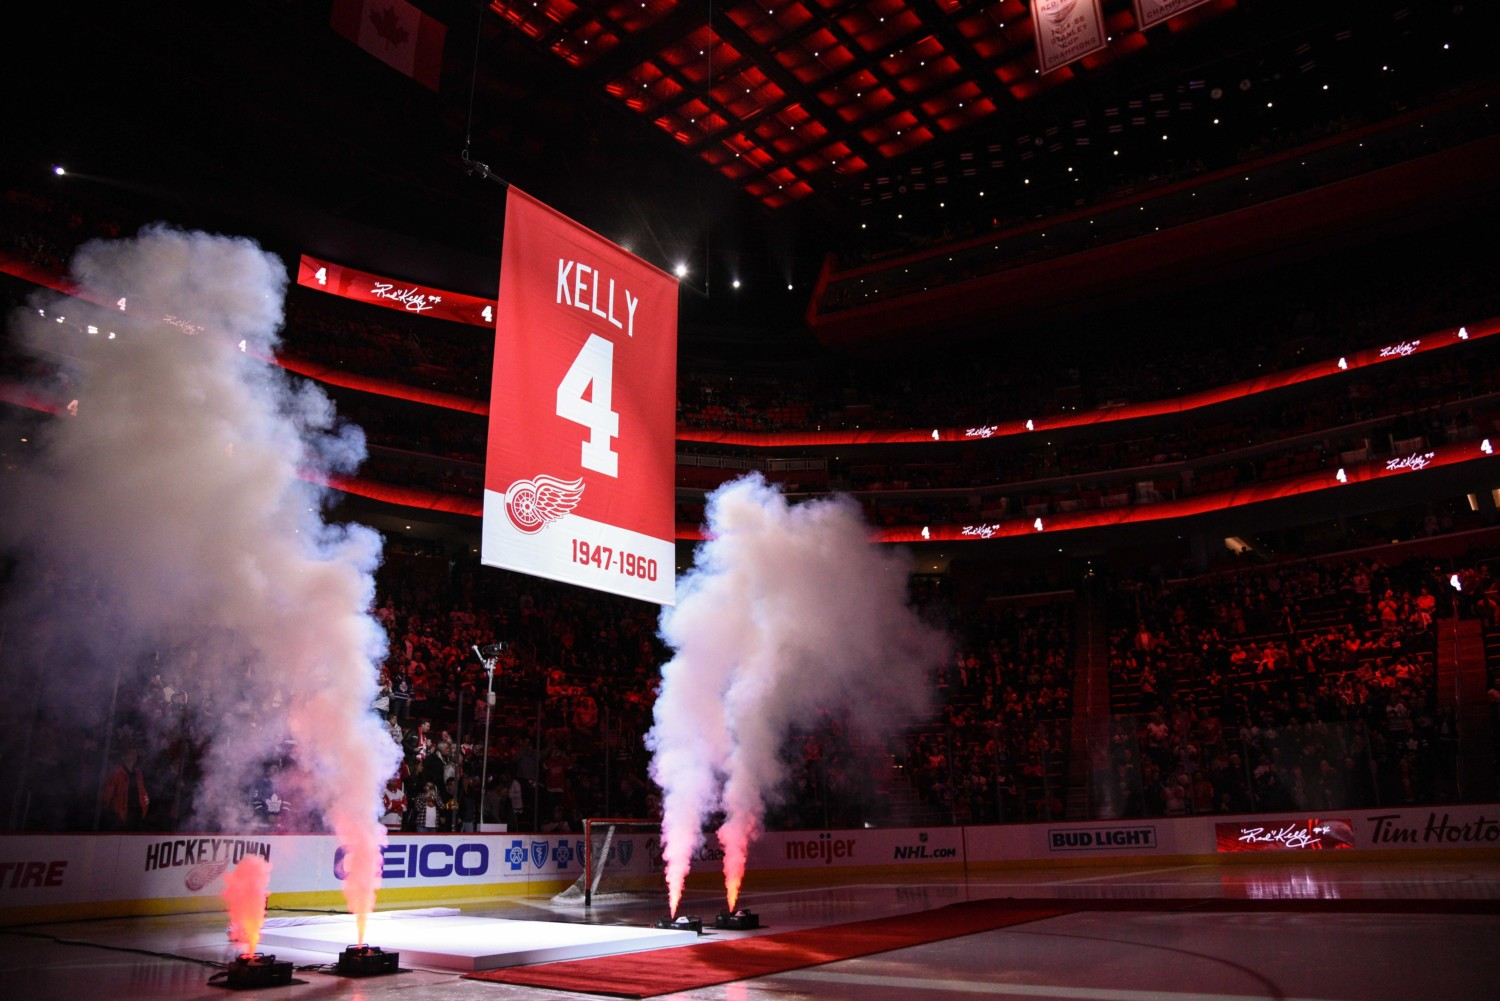 The Detroit Red Wings retire Red Kelly's No. 4